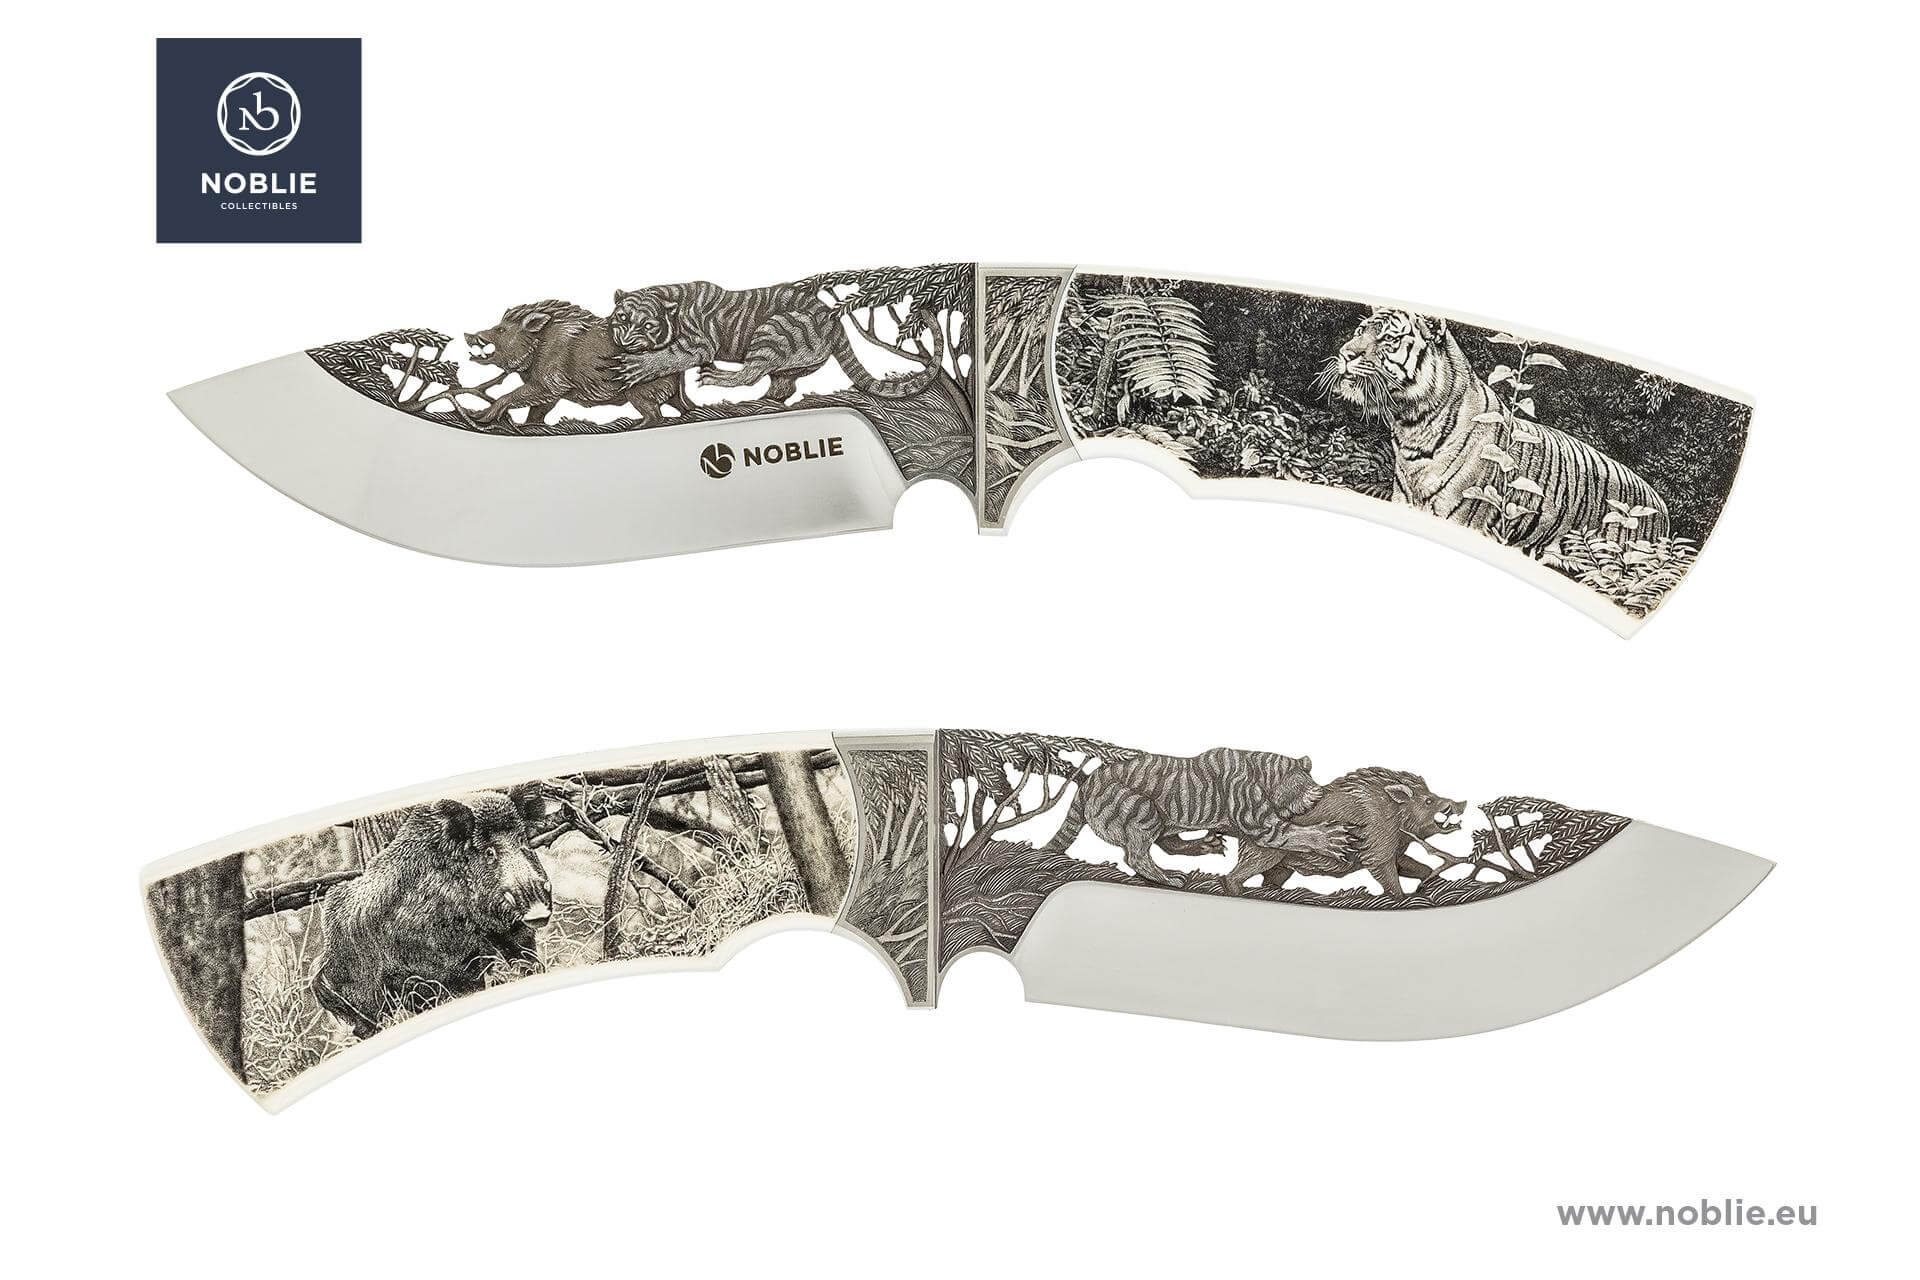 Bladed weapons - a symbol of authority. Luxury gifts for men.